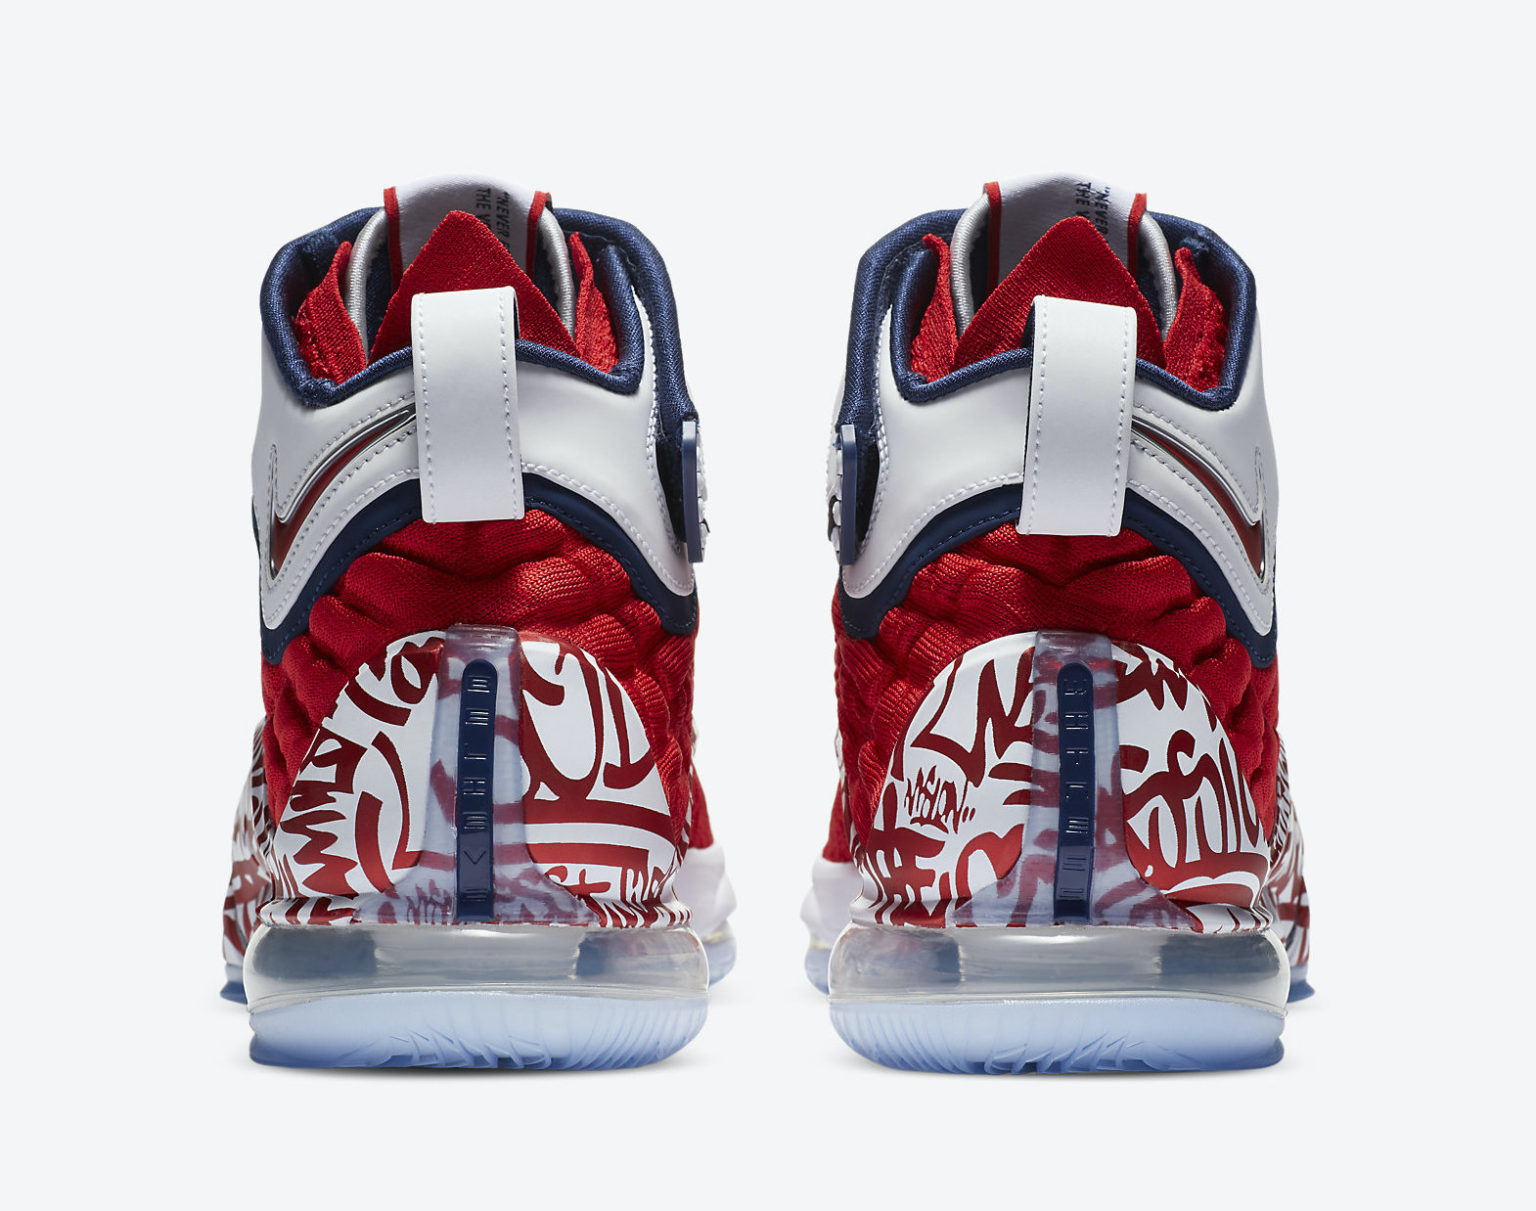 Nike LeBron 17 Red Graffiti Remix CT6047-600 Release Info